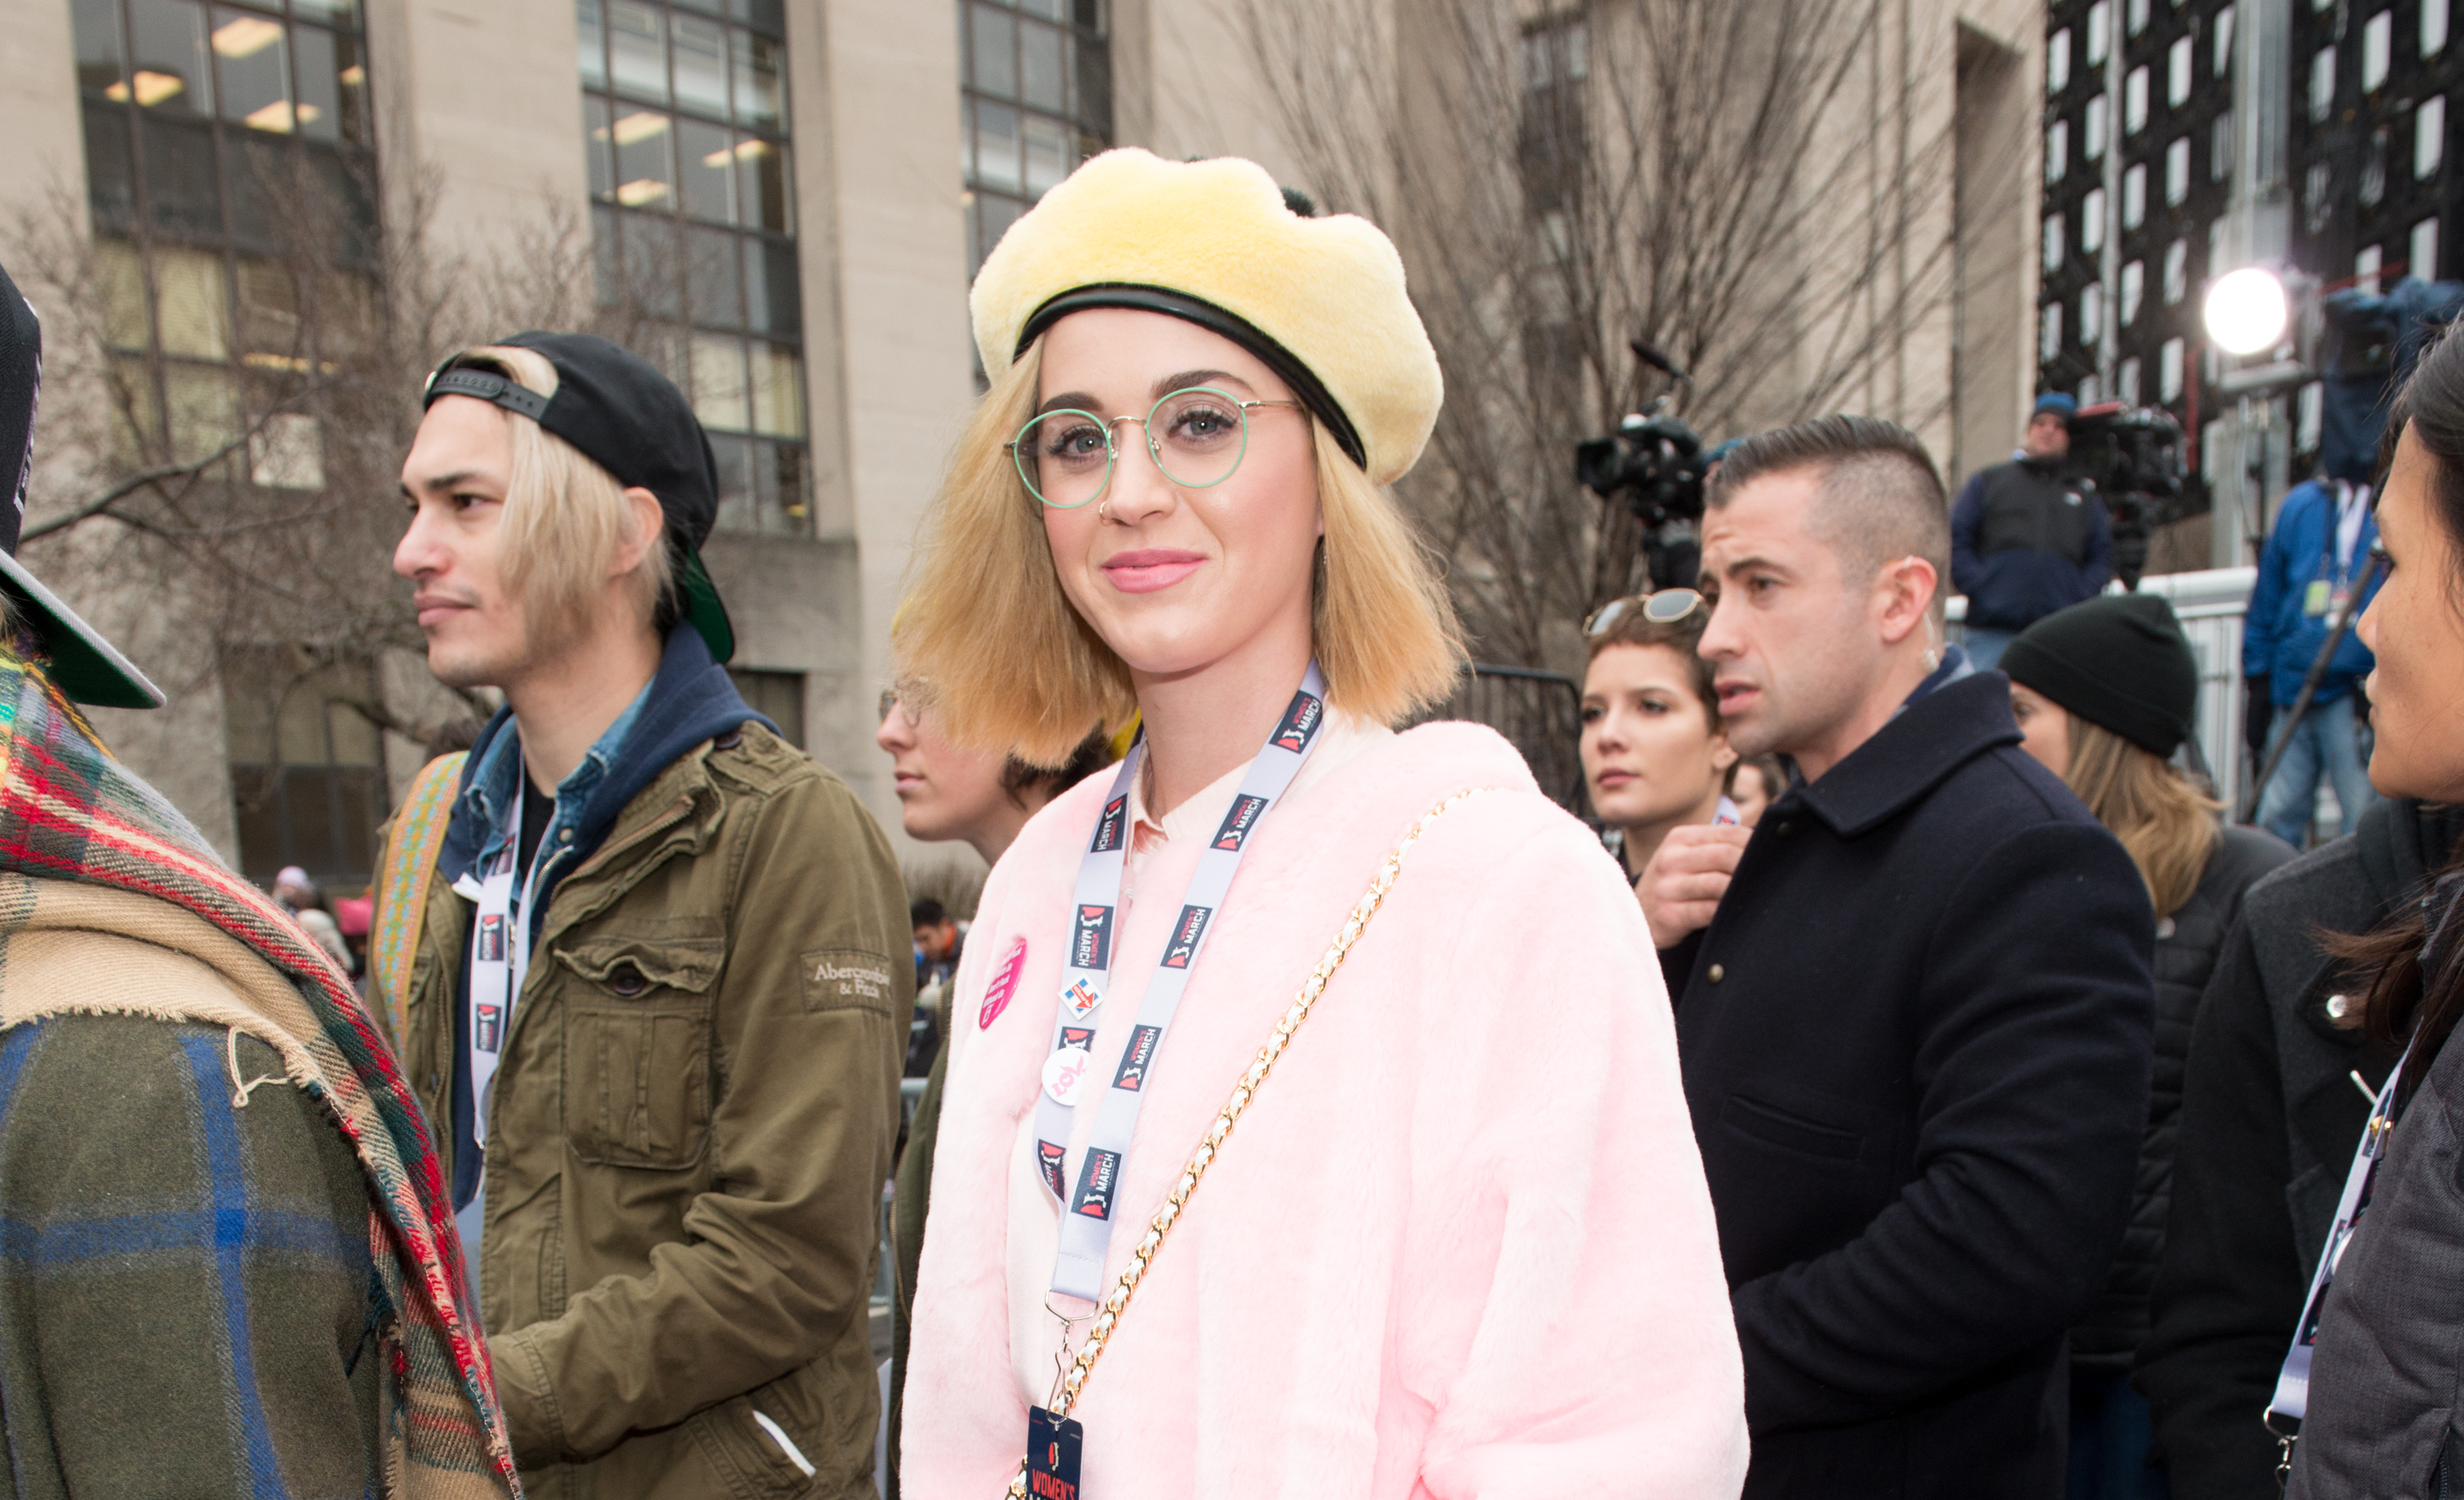 WASHINGTON, DC - JANUARY 21:  Katy Perry attends the Women's March on Washington on January 21, 2017 in Washington, DC.  (Photo by Noam Galai/WireImage)